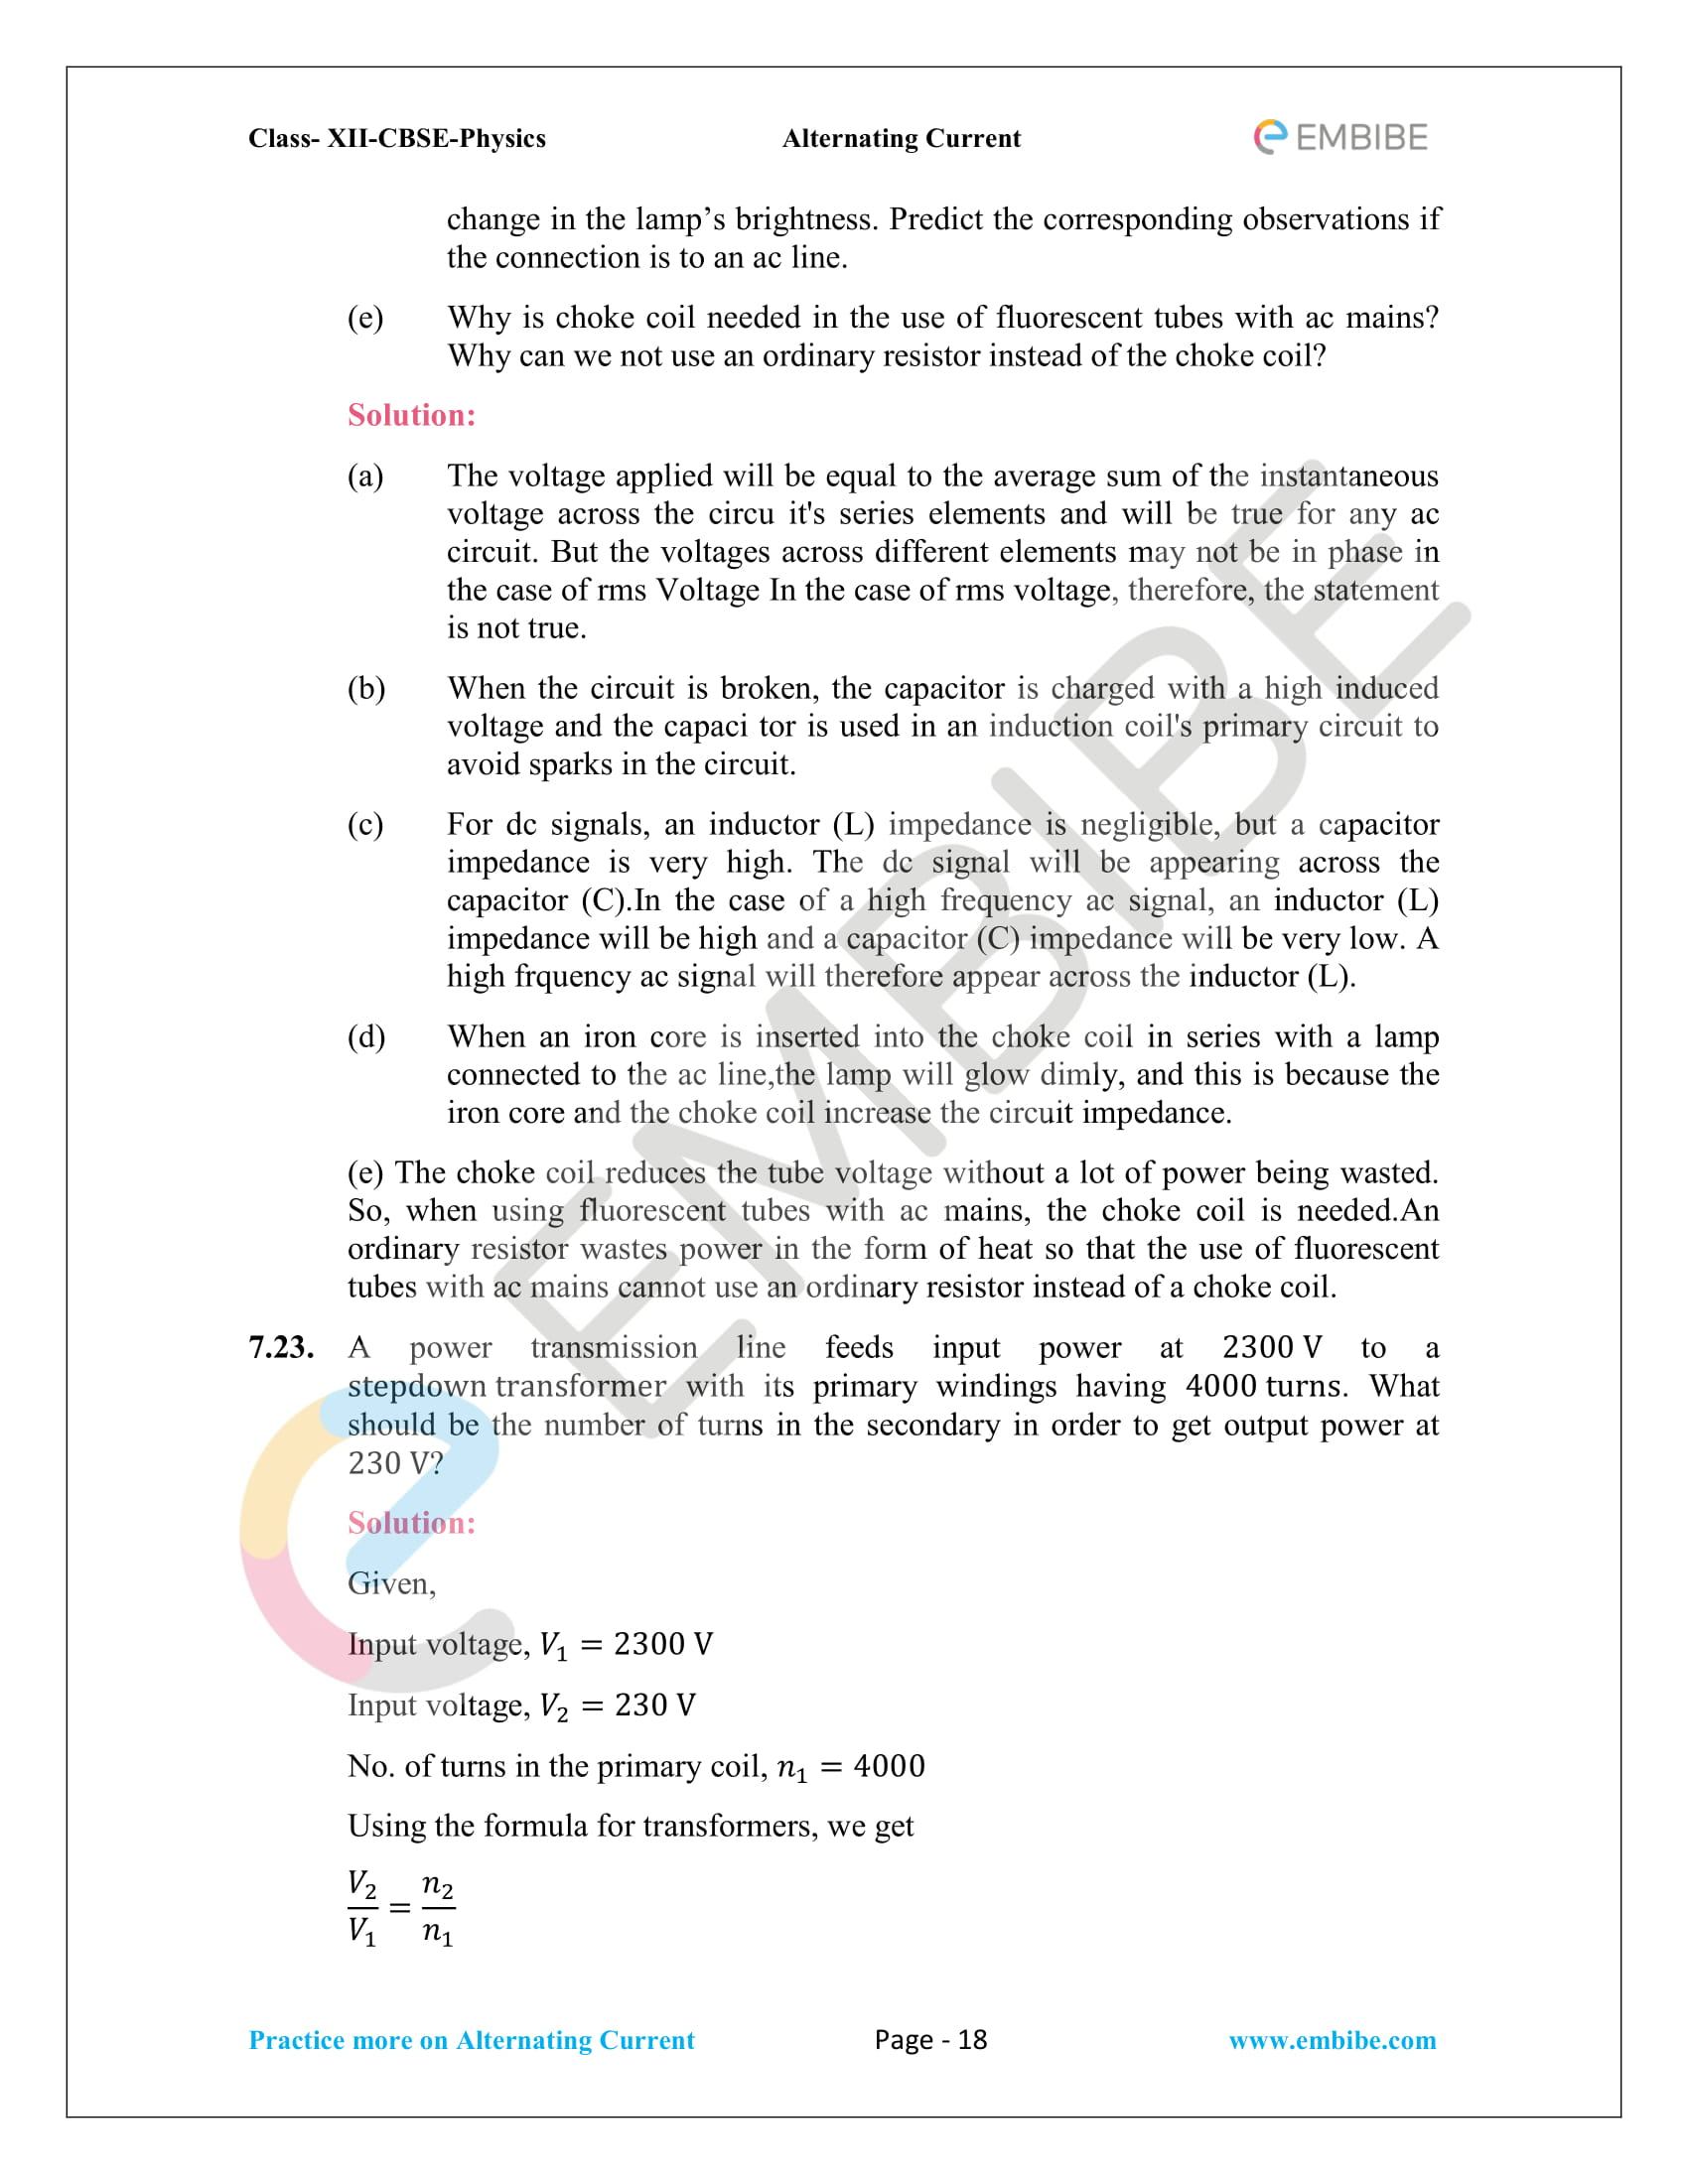 NCERT Solutions for Class 12 Chapter 7 Alternating Current-18